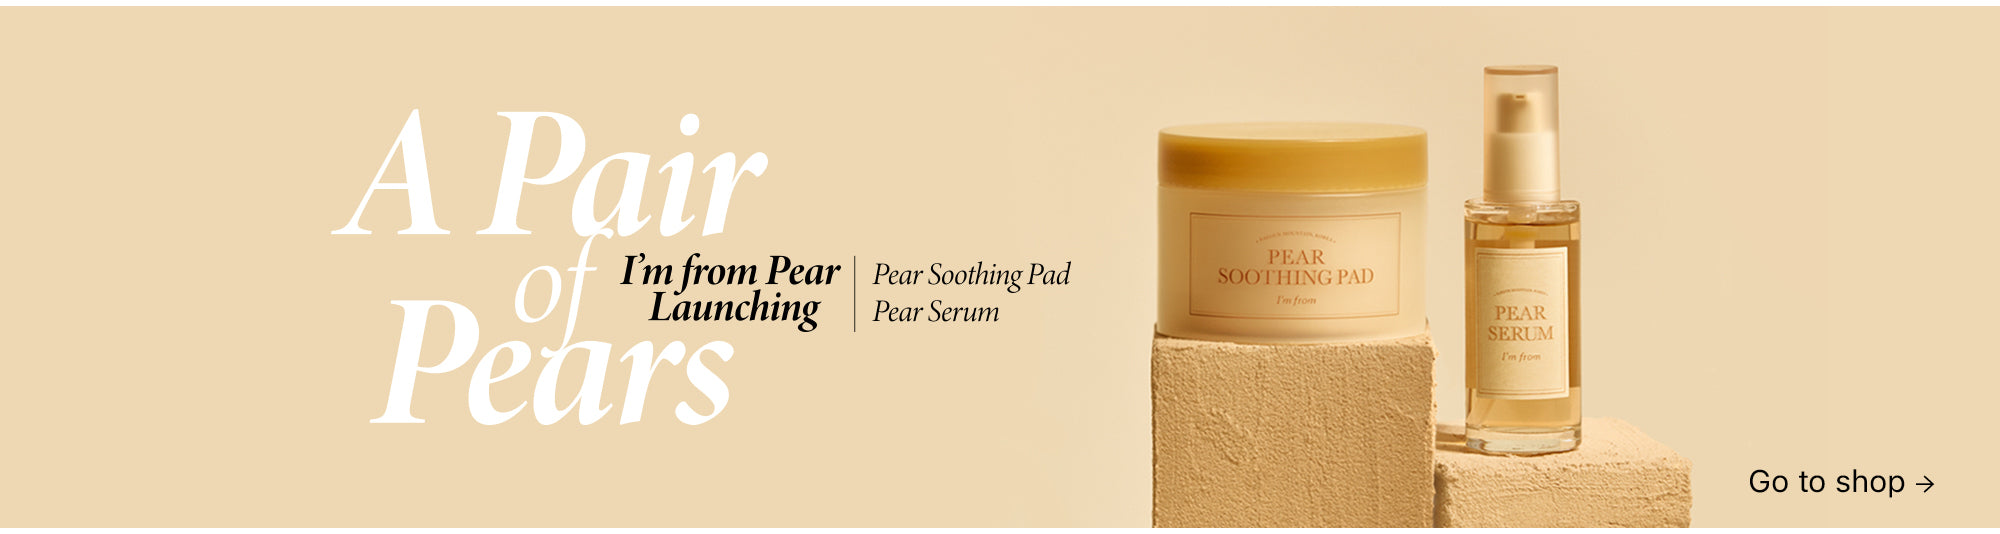 I'm from Pear Launching Special